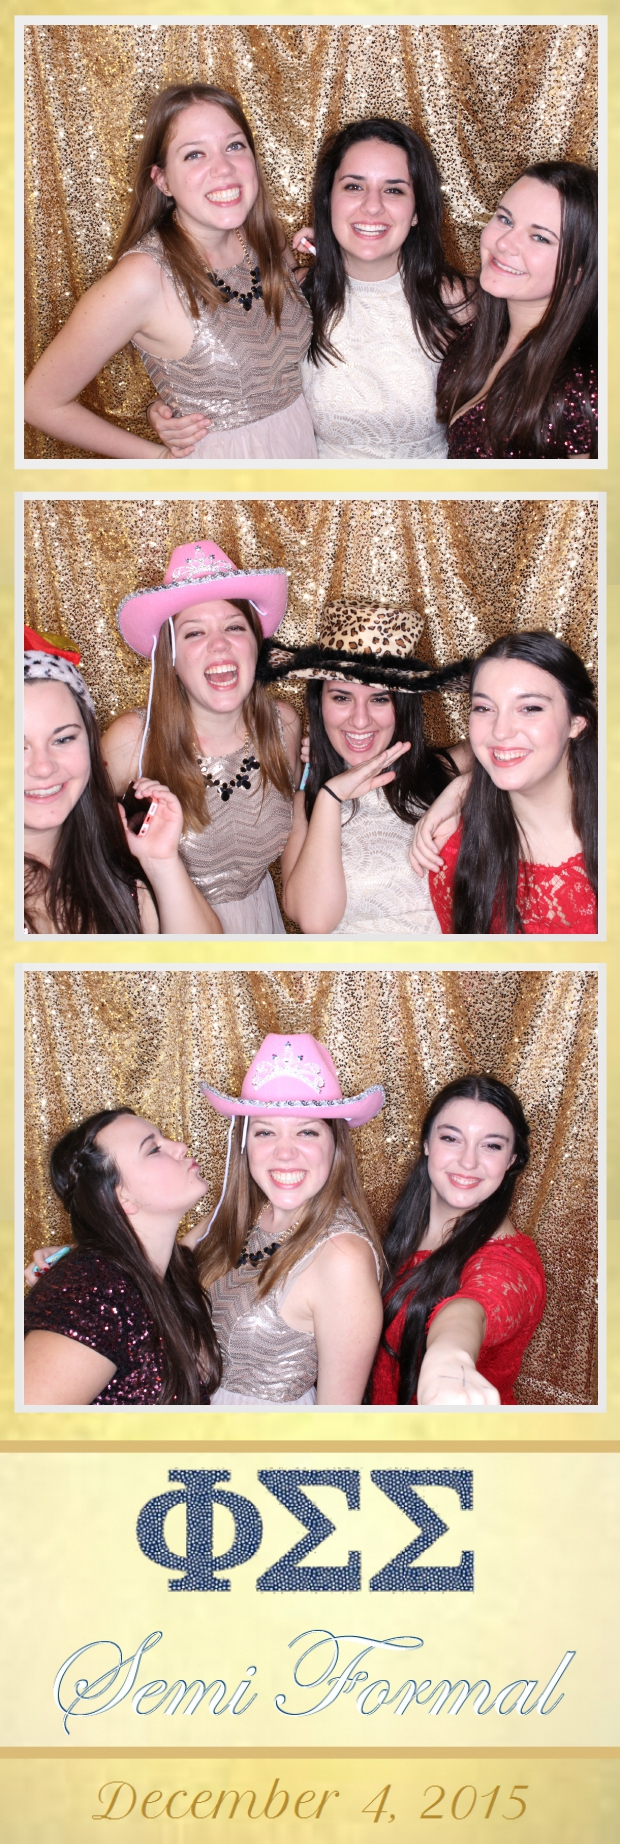 Guest House Events Photo Booth Phi Sigma Sigma Semi Formal (58).jpg